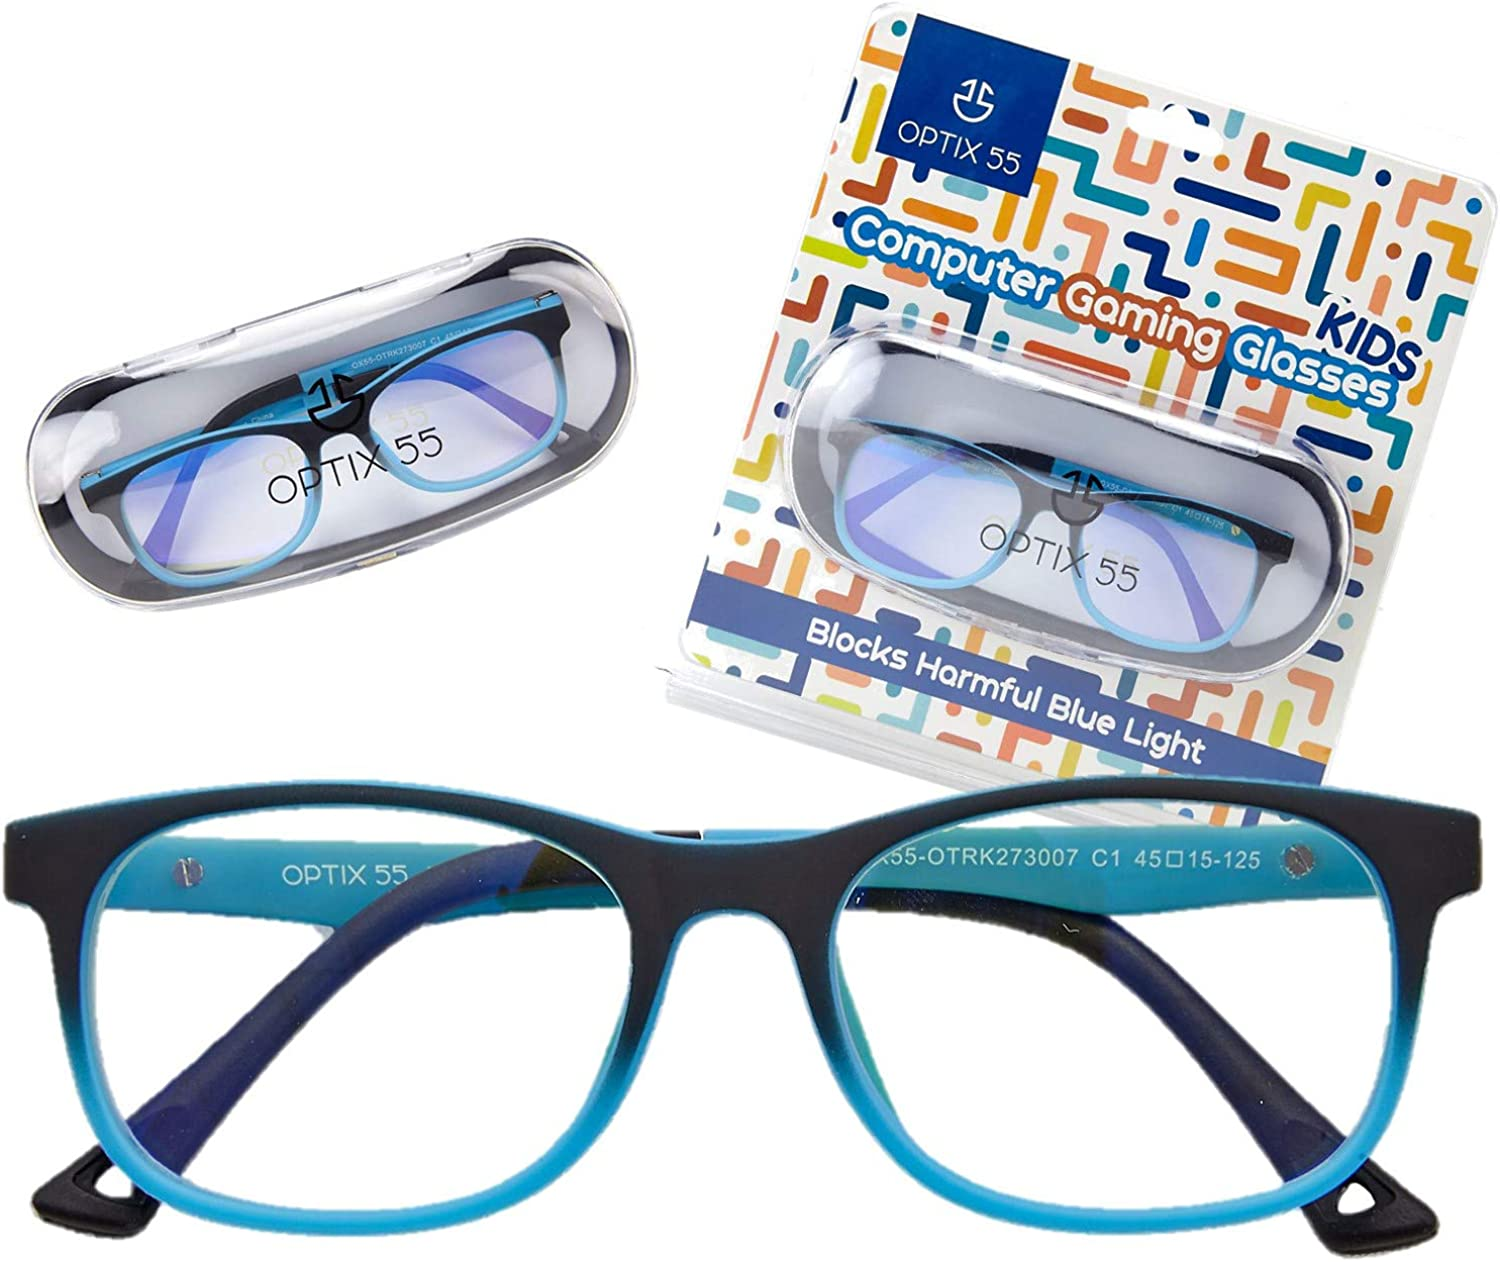 Amazon.com: Kids Blue Light Blocking Glasses - Anti Eyestrain - Computer  Video Gaming Eyeglasses for Boys & Girls - Bendable & Unbreakable Flexible  Blue Square Frame Eye Glasses (Blue): Shoes